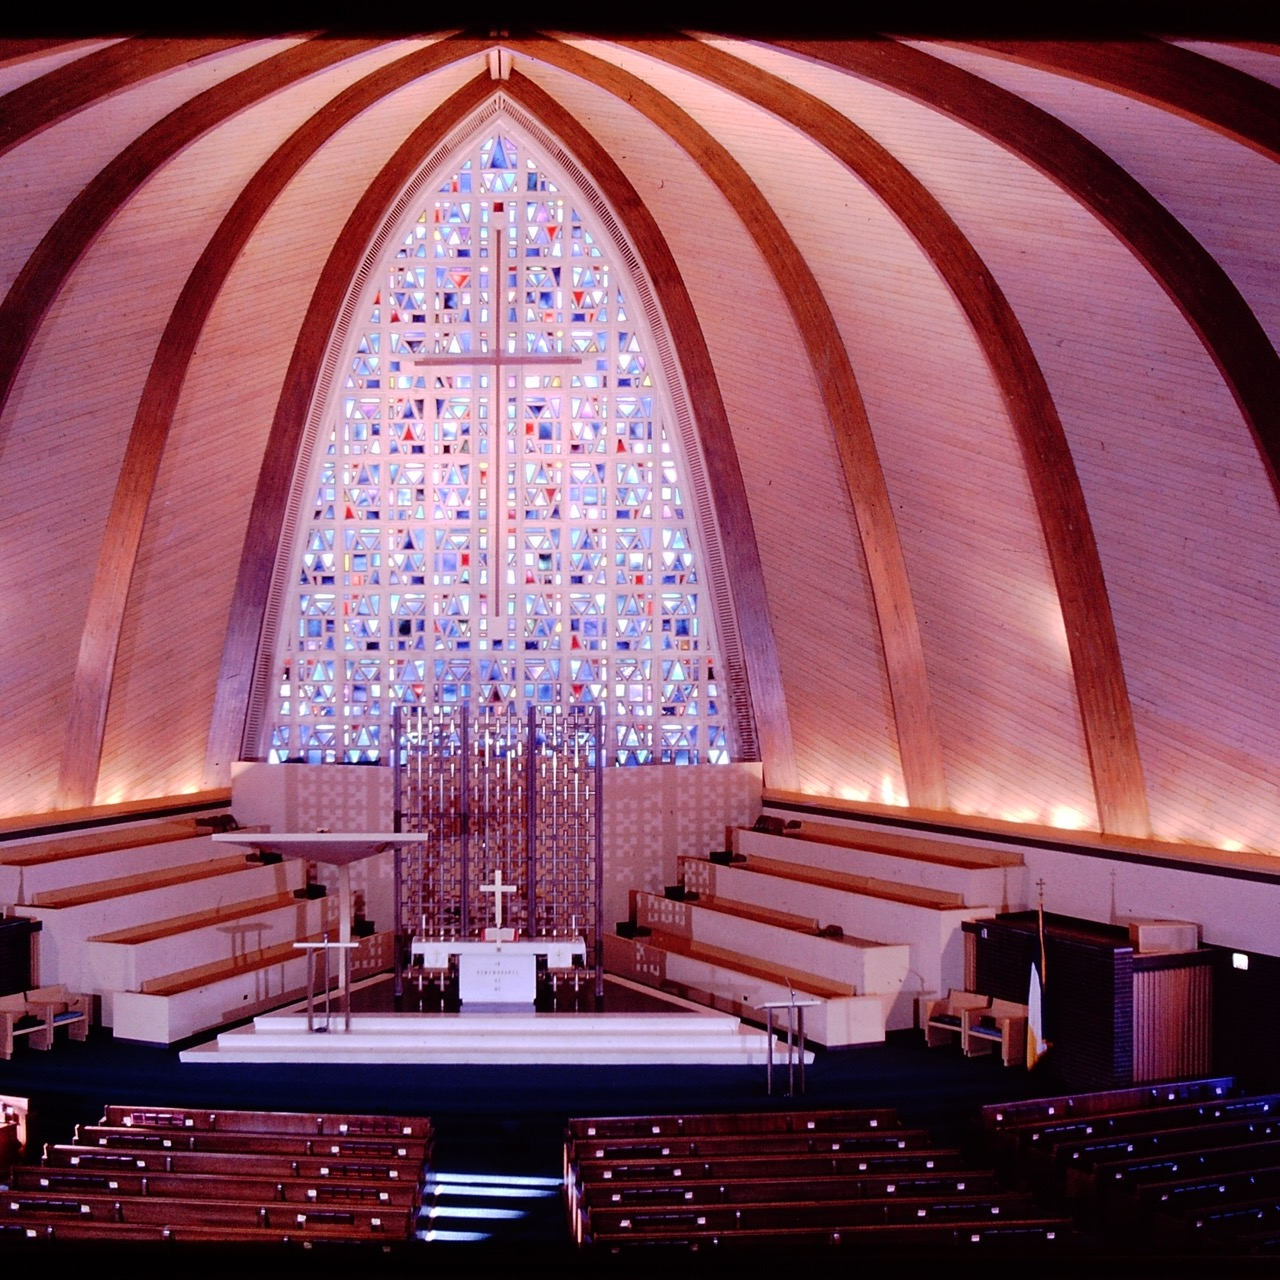 Breathtaking interior photo of Zion Christian Catholic Church and the stained glass window designed by Gerda Elisabeth Swanson Firant. Photo courtesy of Firant Family Archive.